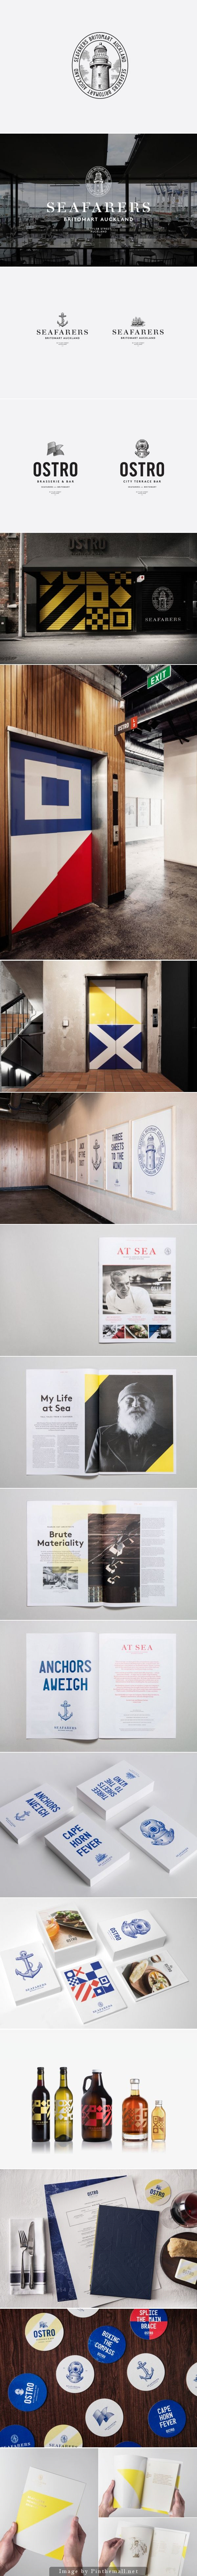 Really nice Seafarer's and Ostro by Inhouse #identity #packaging #branding curated by packaging Diva PD created via http://bpando.org/2014/06/11/logo-seafarers-by-inhouse/